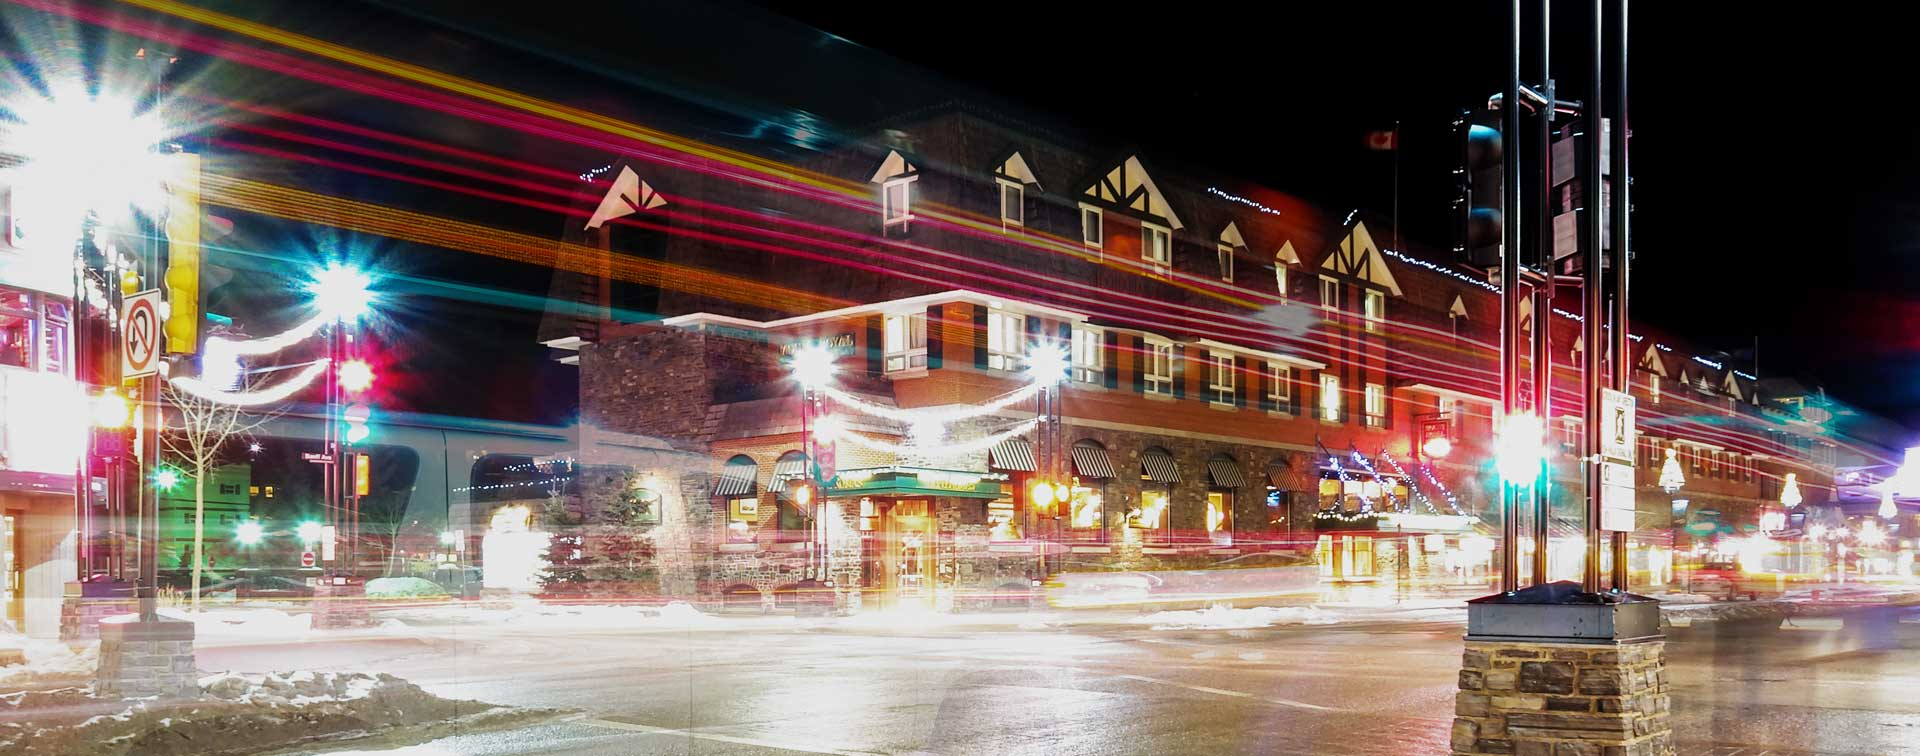 Banff-Lights_1920x756.jpg